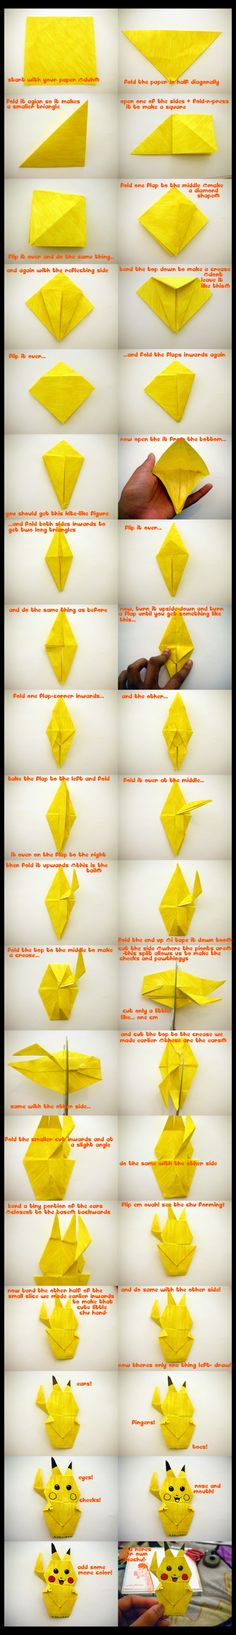 How To Make An Origami Pikachu  Infographic